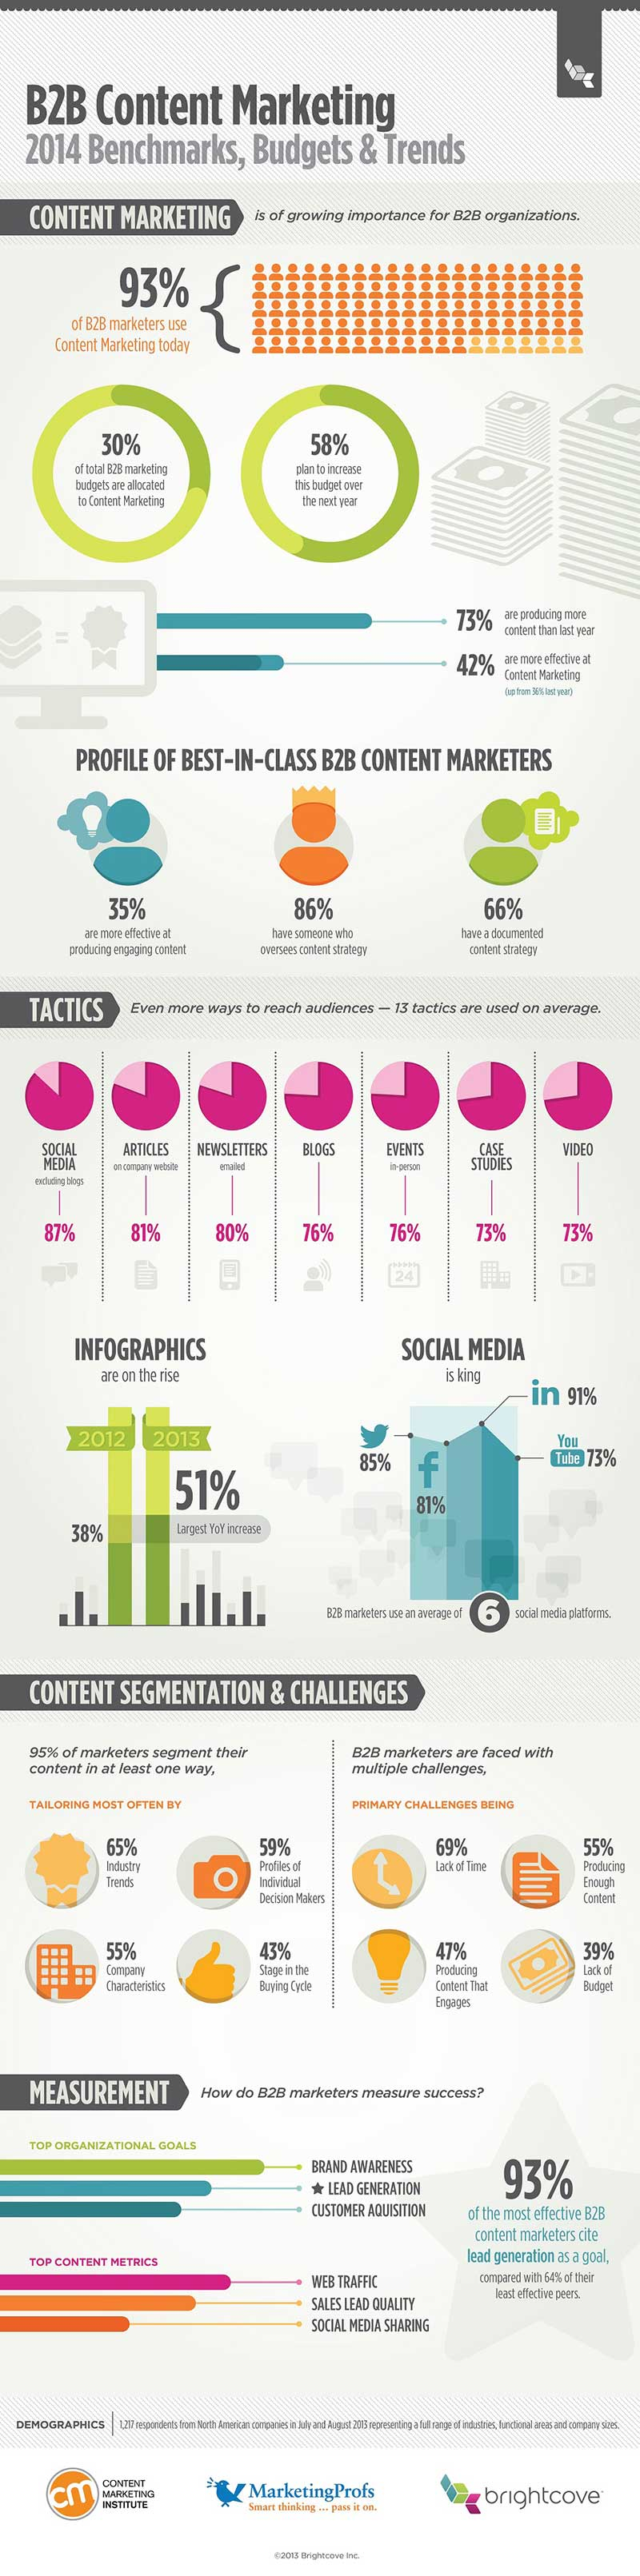 B2B Content Marketing 2013